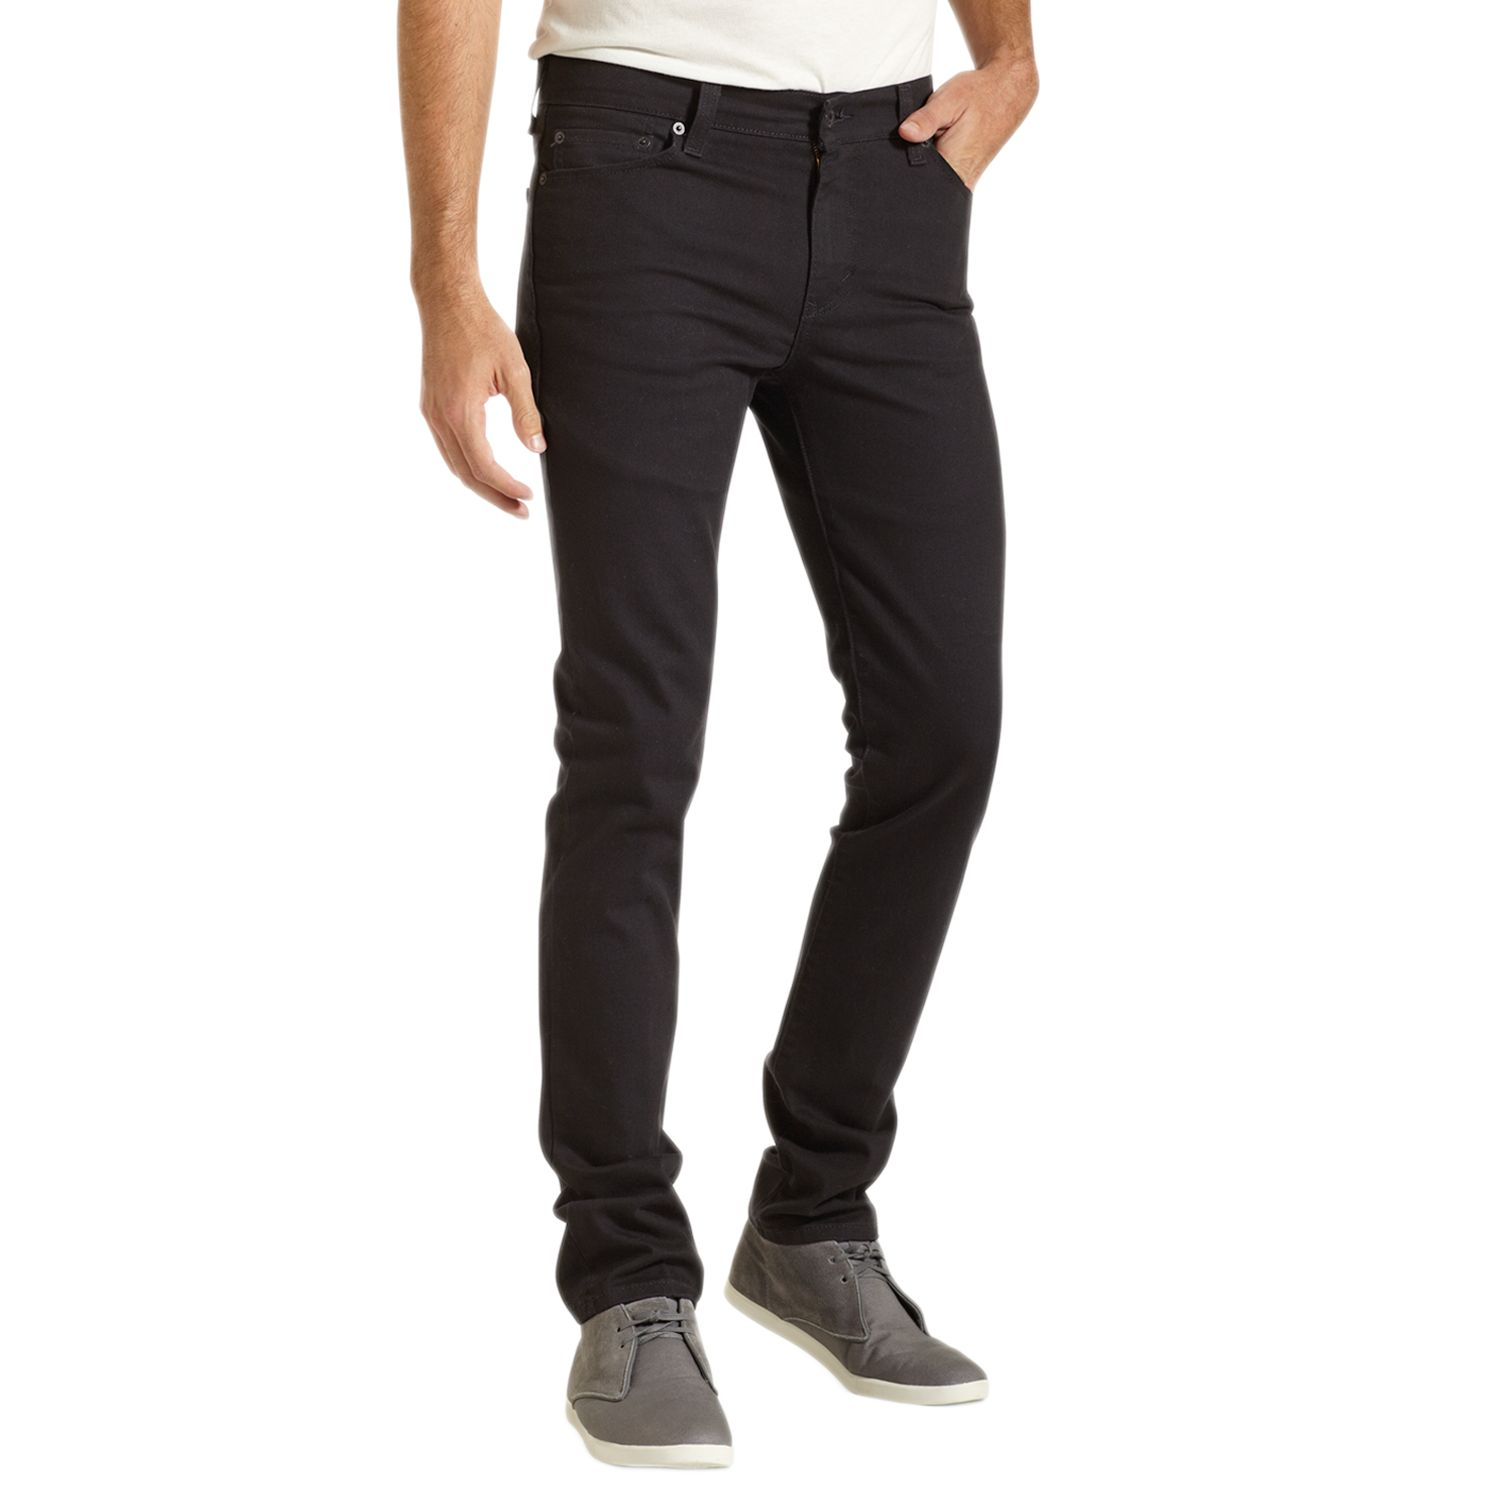 Levi's skinny jeans for guys